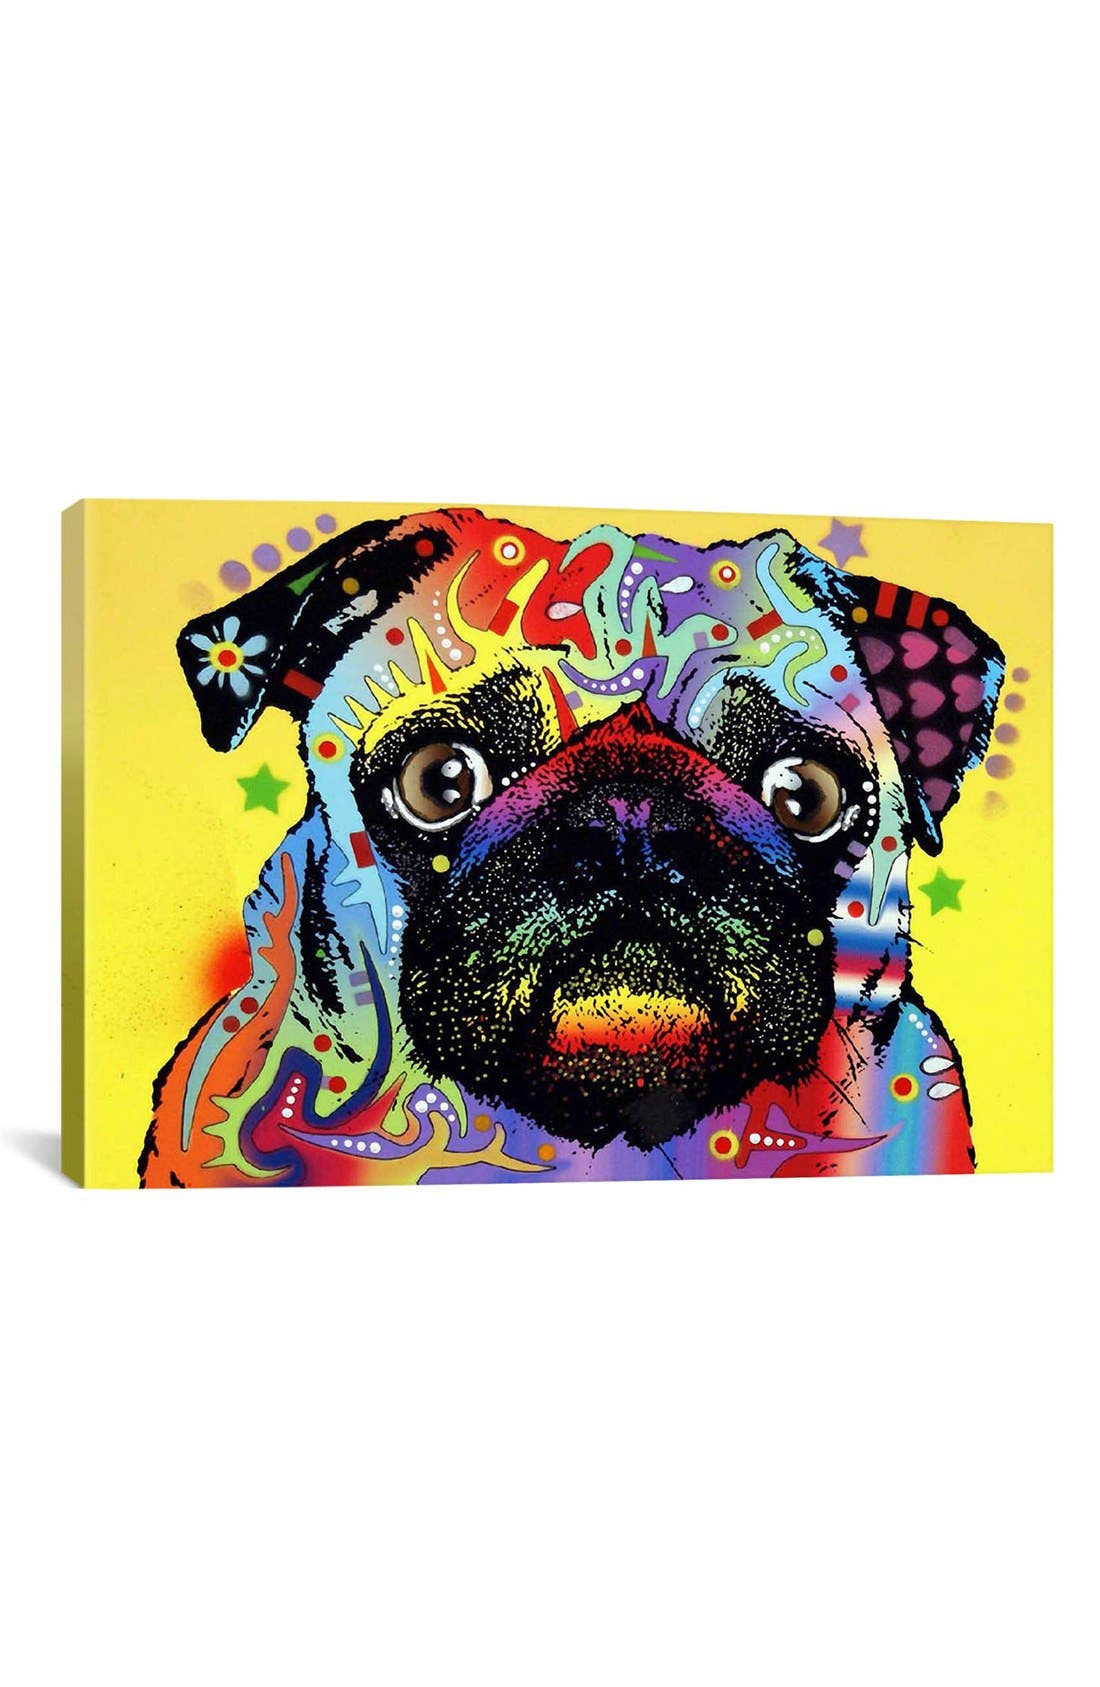 'Pug - Dean Russo' Giclée Print Canvas Art,                             Main thumbnail 1, color,                             Yellow